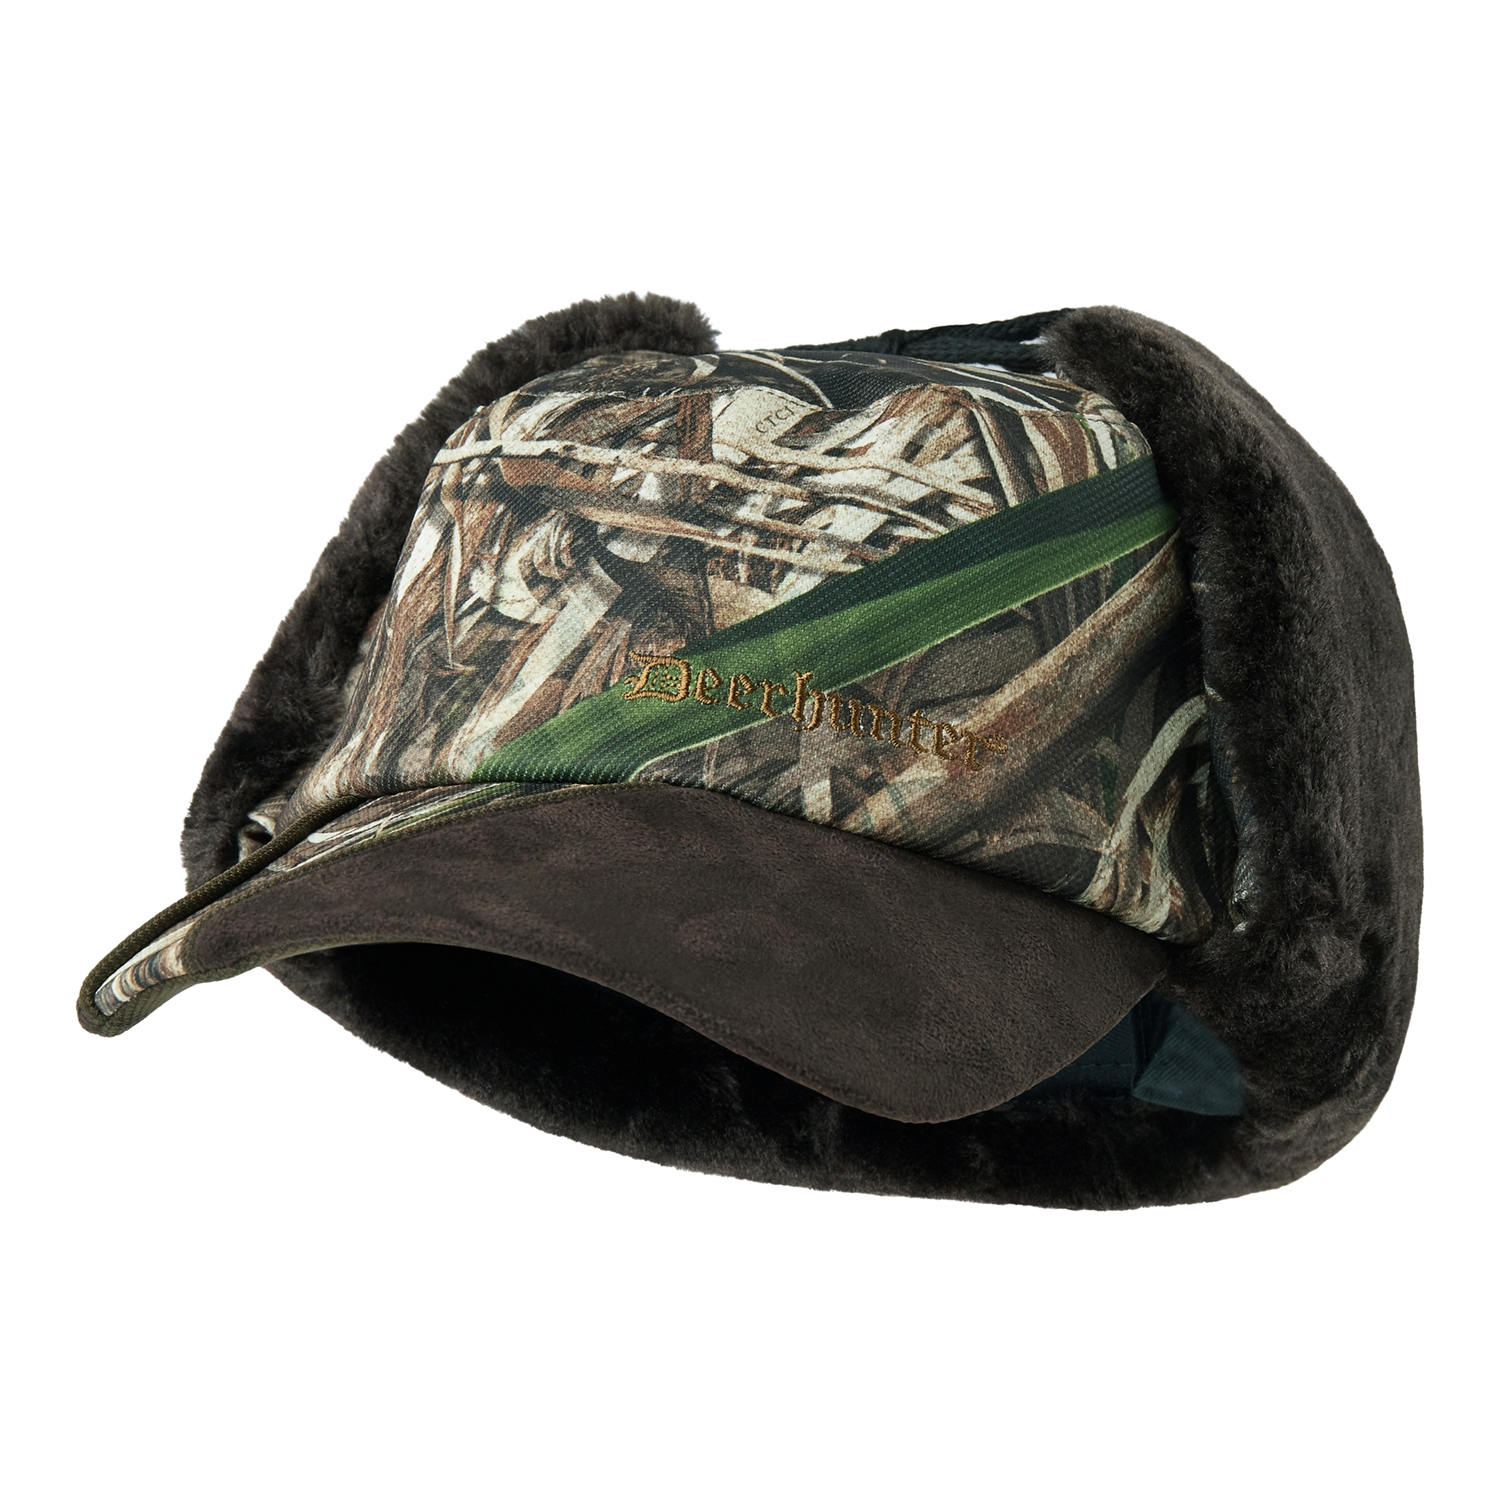 Deerhunter Muflon Winter Hat Camo